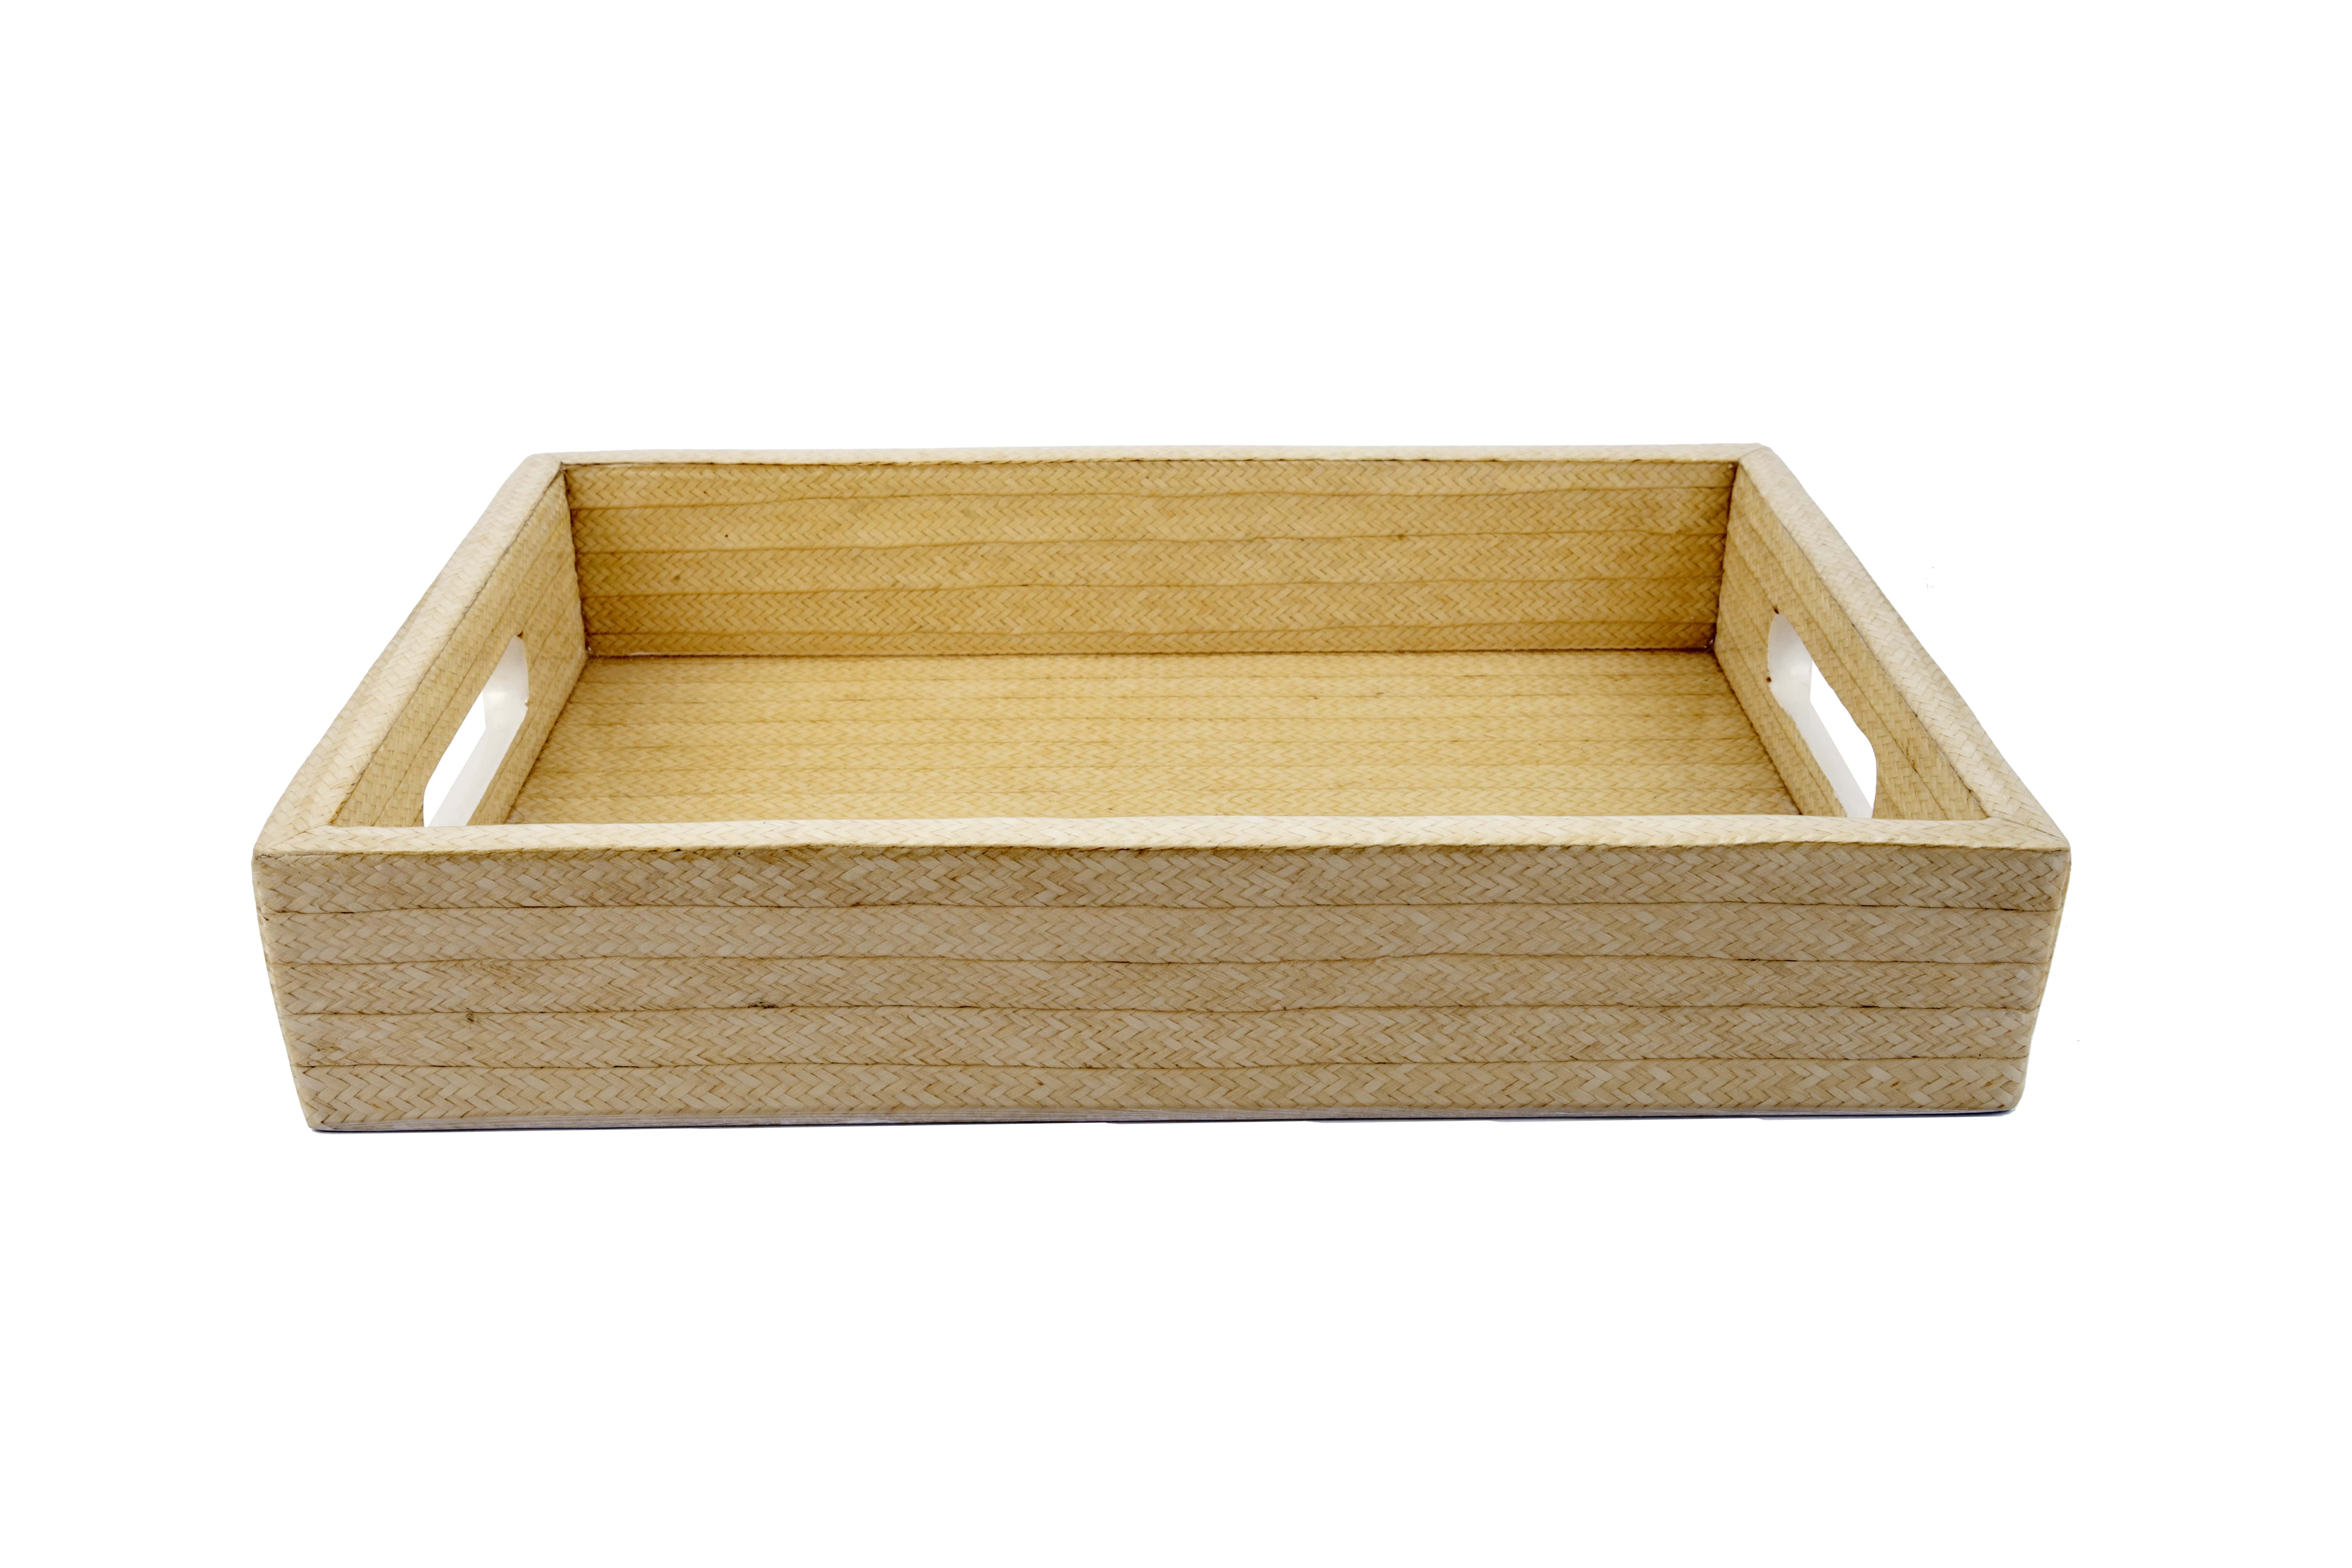 Rectangular tray caña flecha